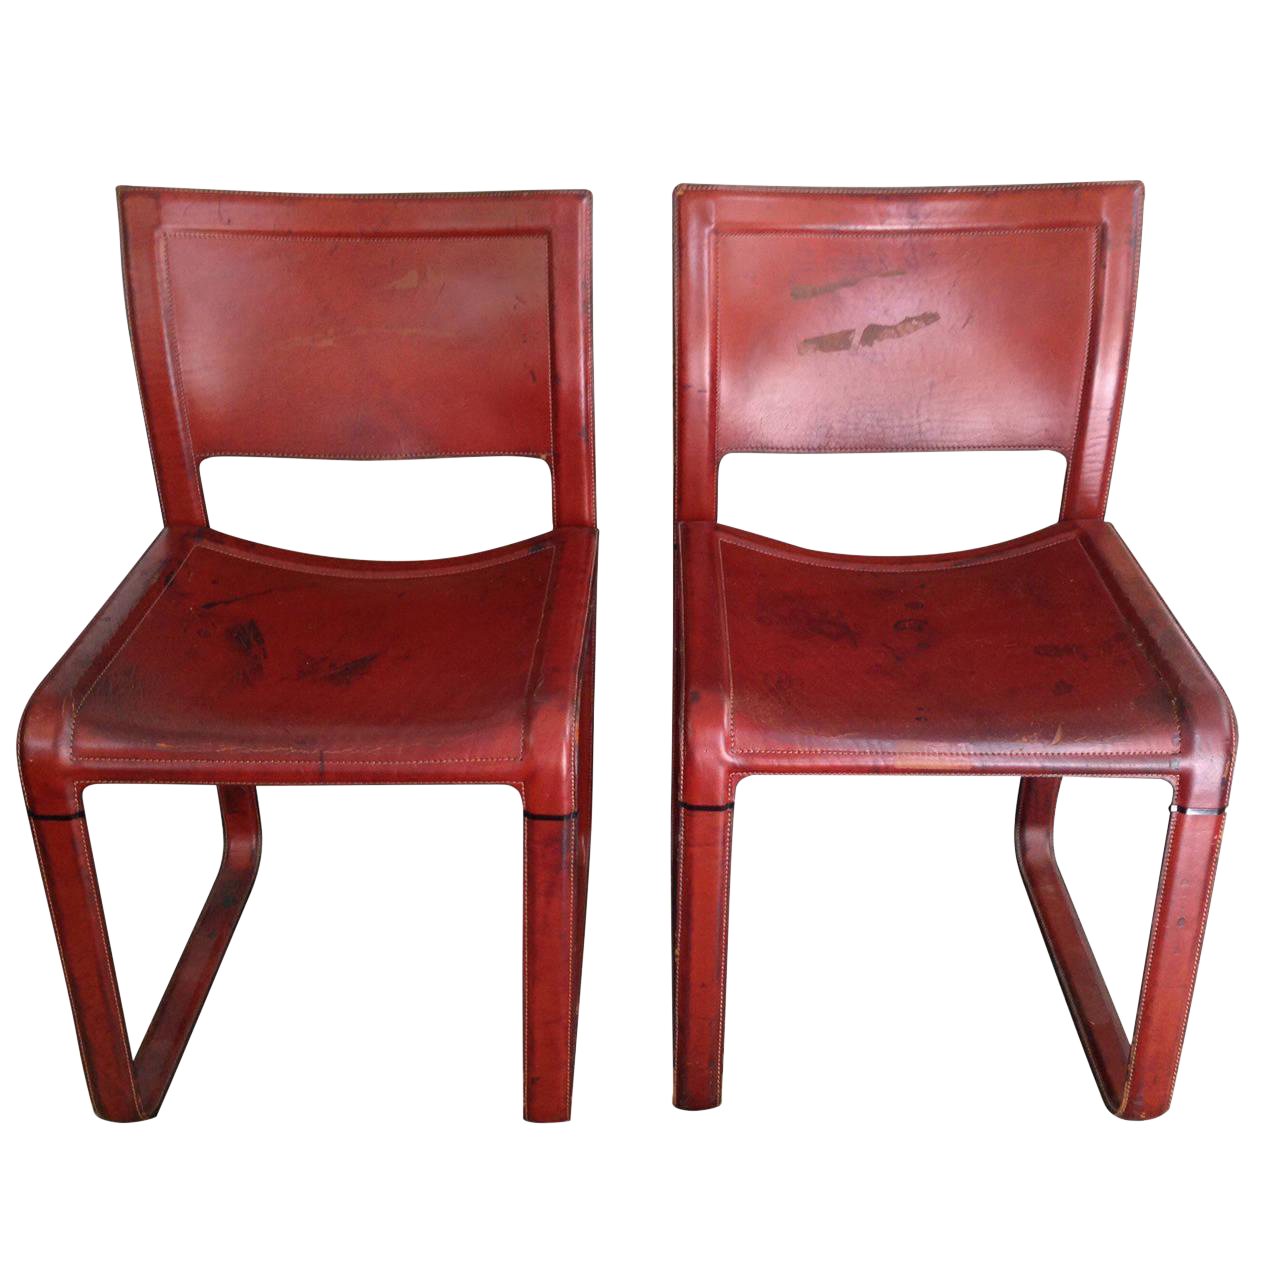 Distressed Matteo Grassi Red Stitched Leather Chairs For Sale